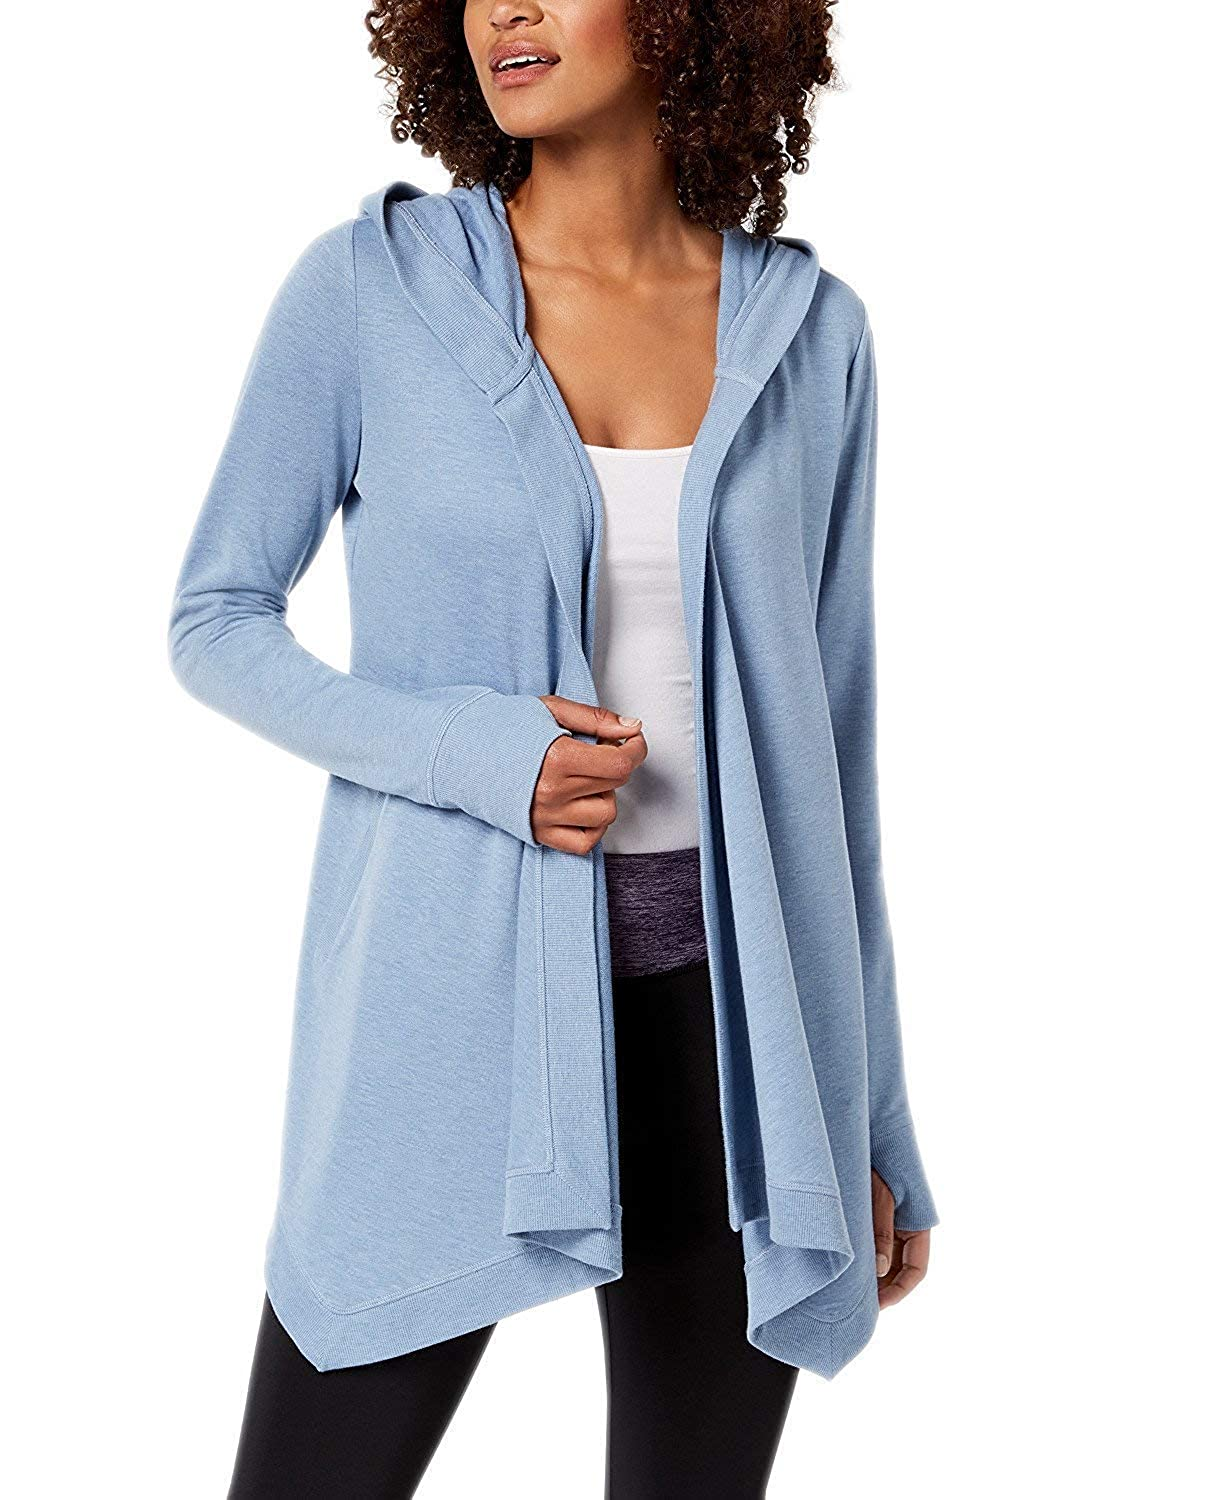 Ideology Womens Hooded Solid Color Lightweight Athletic Wrap Top